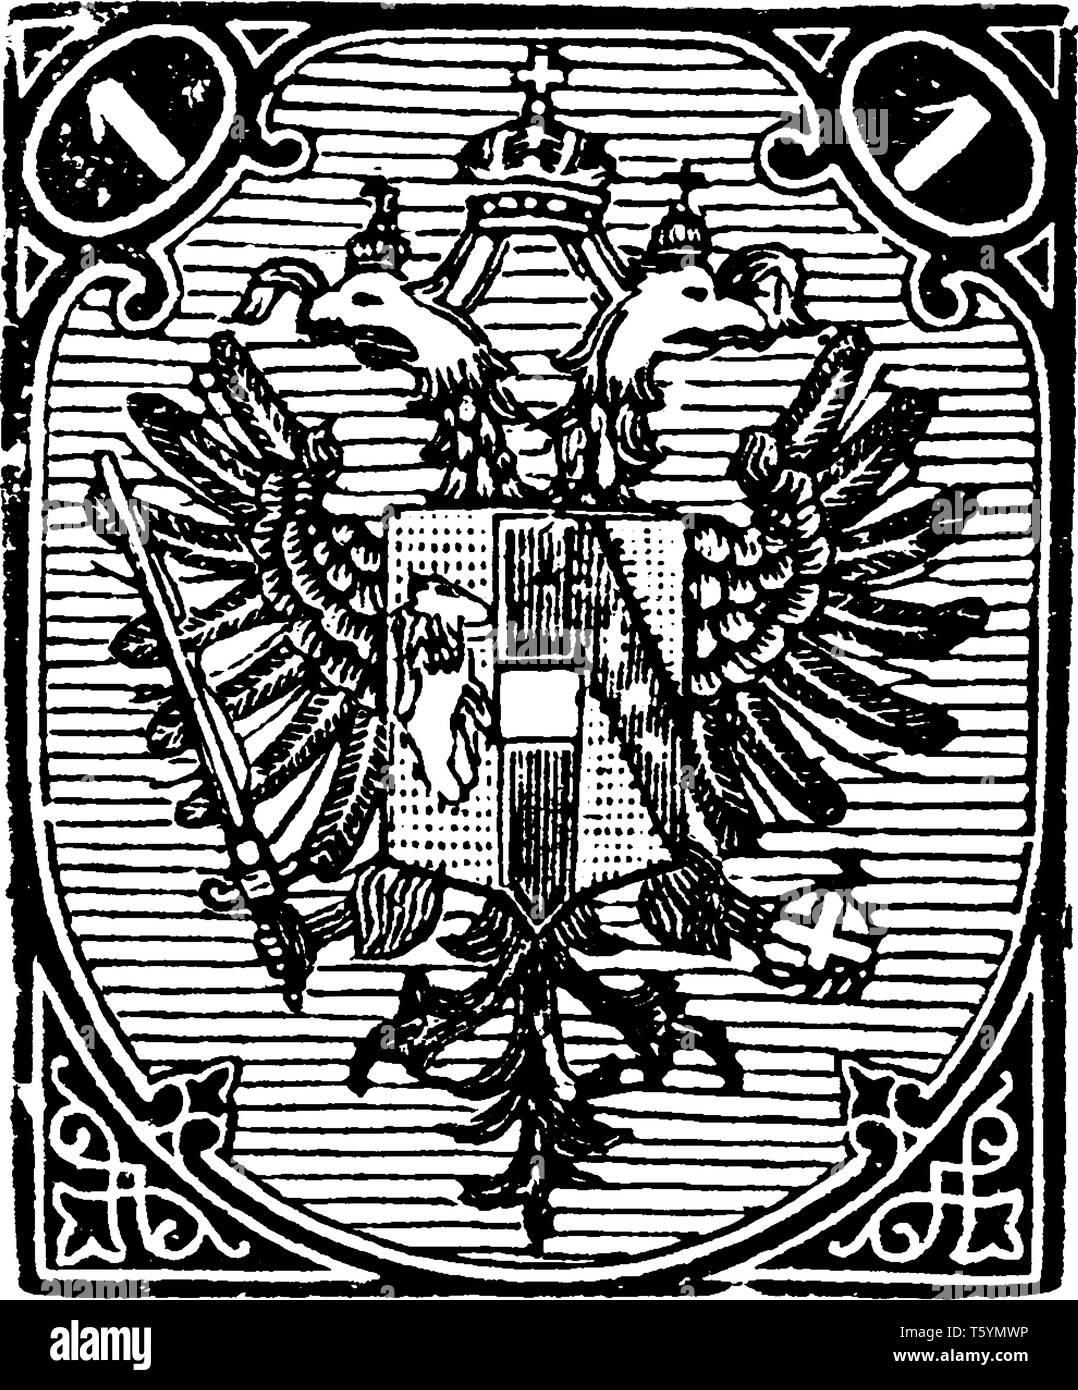 Bosnia 1 N Stamp in 1879 which designs feature the coat of arms and numeral tablets in the upper corners, vintage line drawing or engraving illustrati - Stock Image